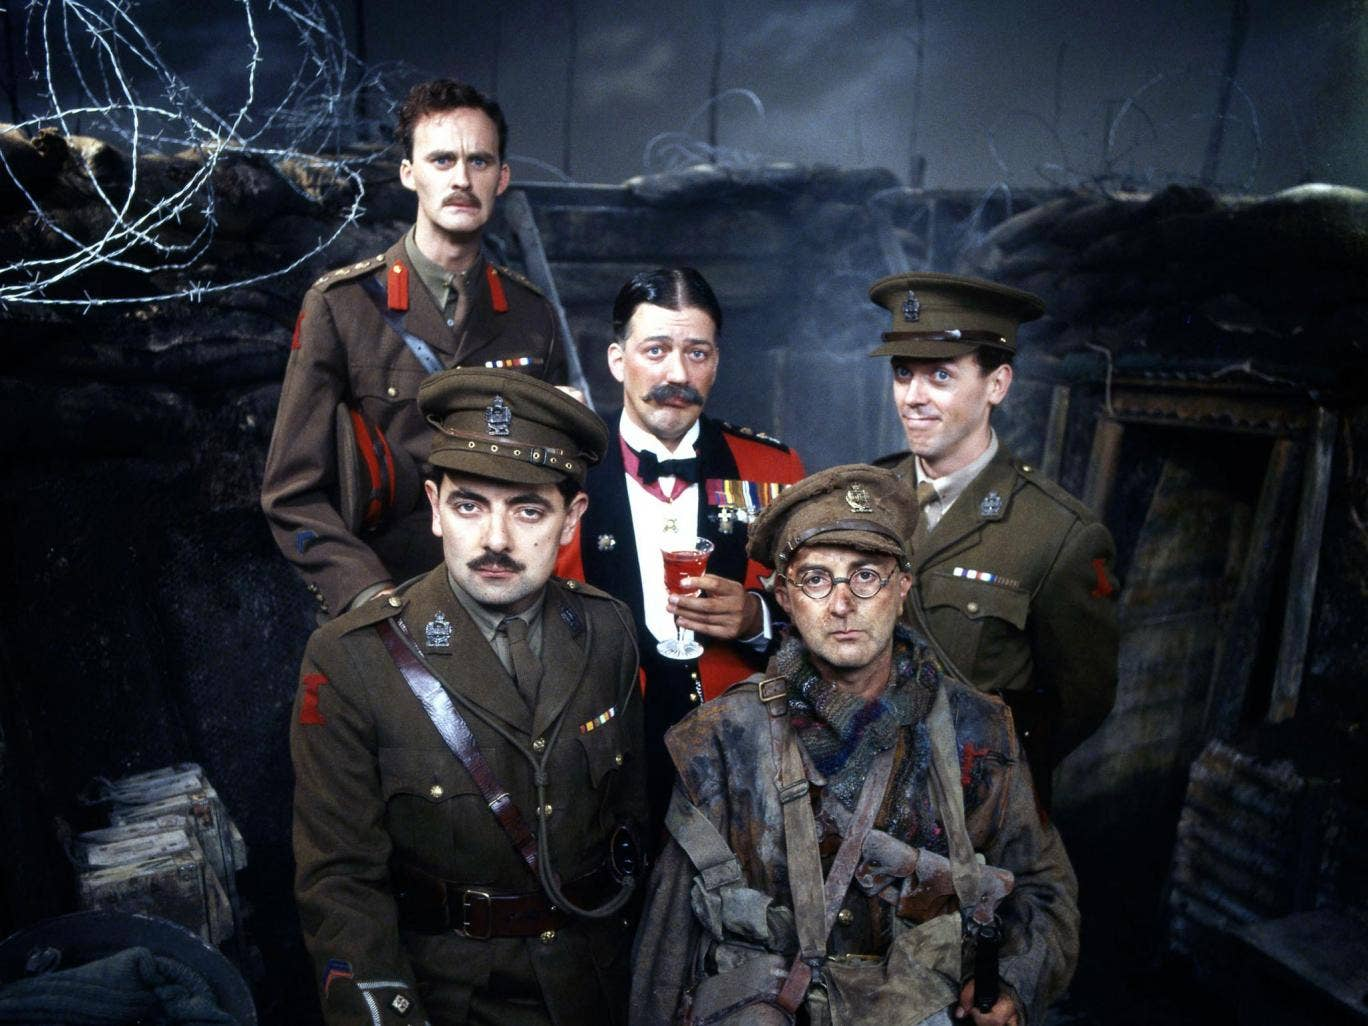 The cast of 'Blackadder Goes Forth'